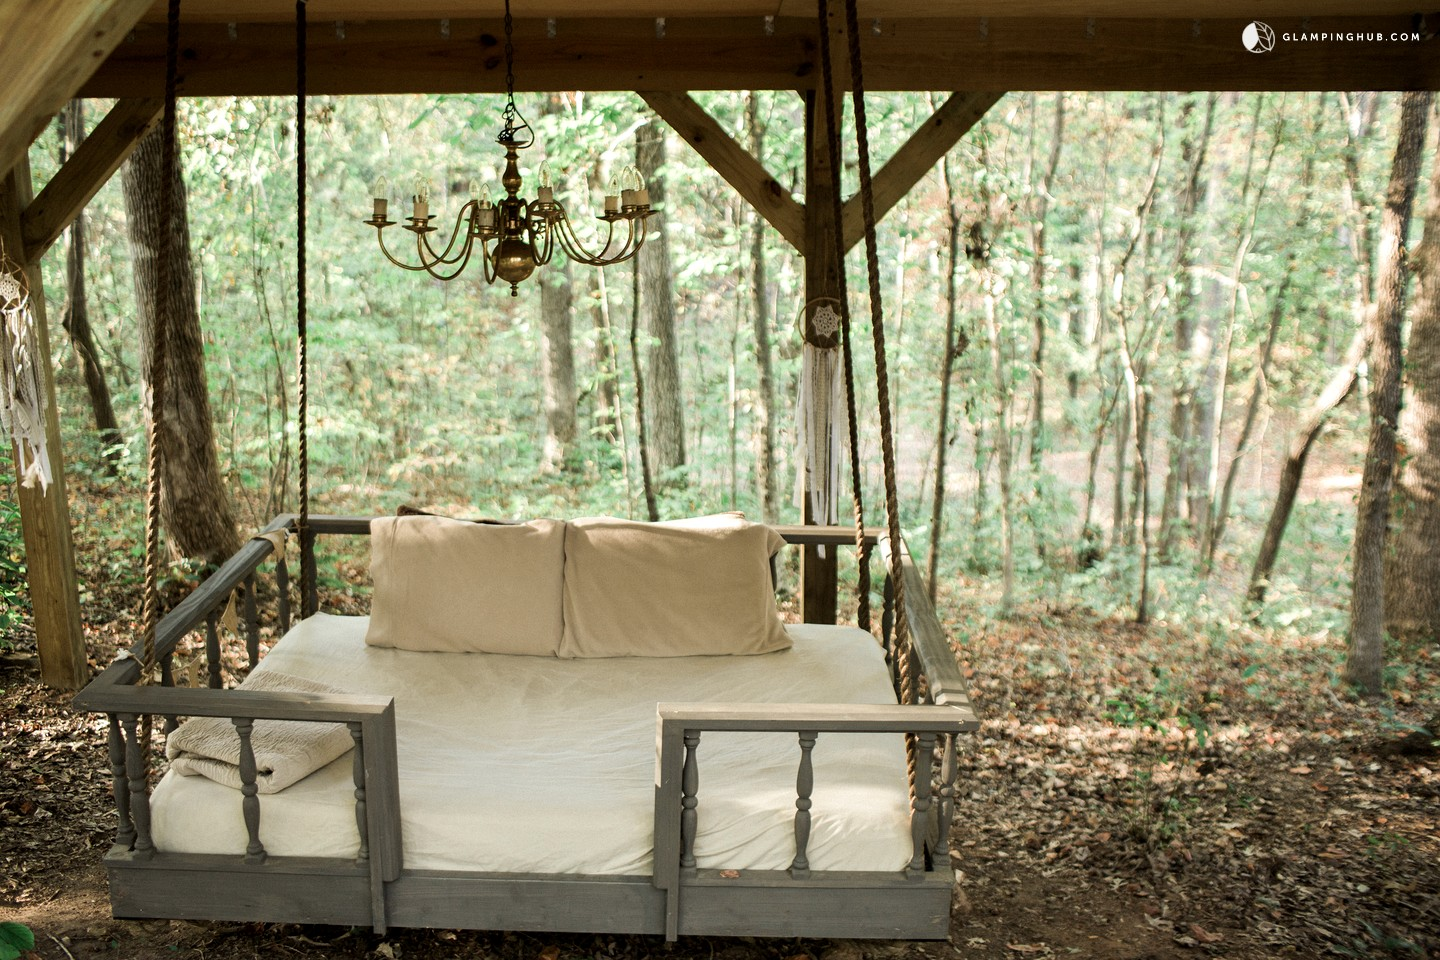 5 Awesome Treehouse Rentals to Climb Into